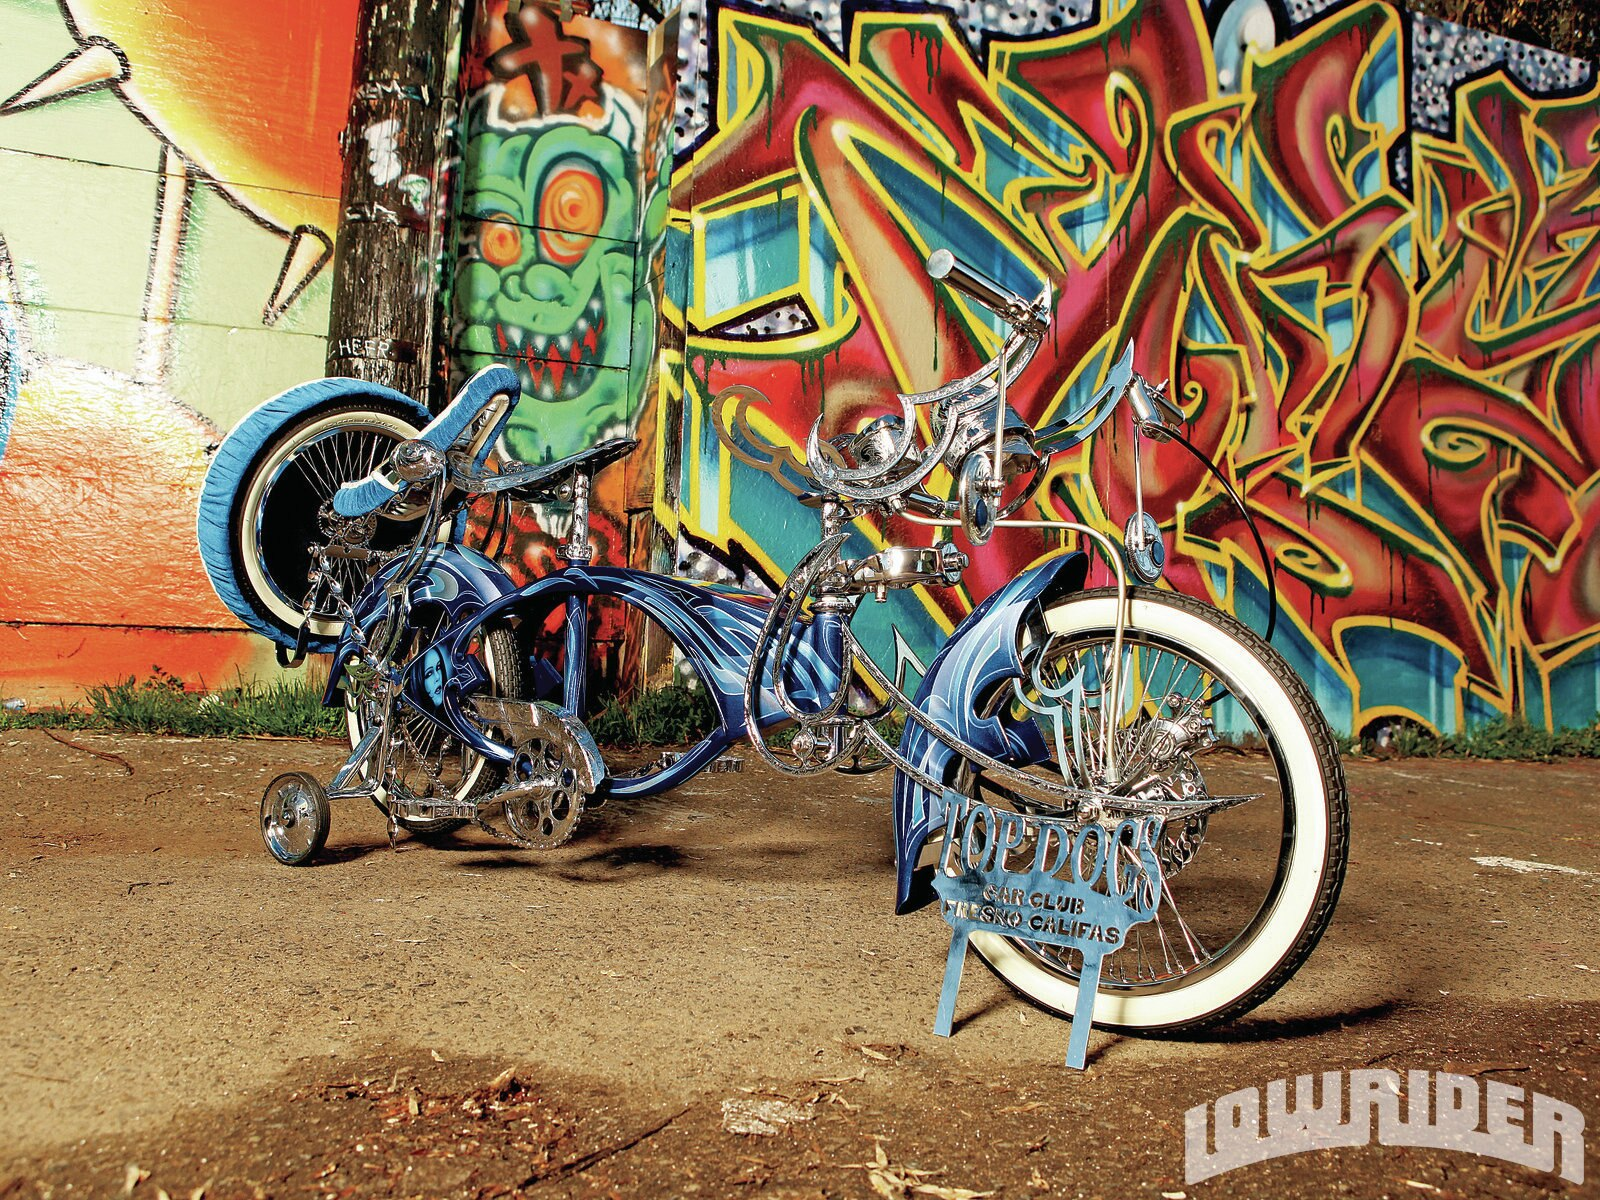 1205-lrmp-01-o-custom-lowrider-bicycle-side-view1